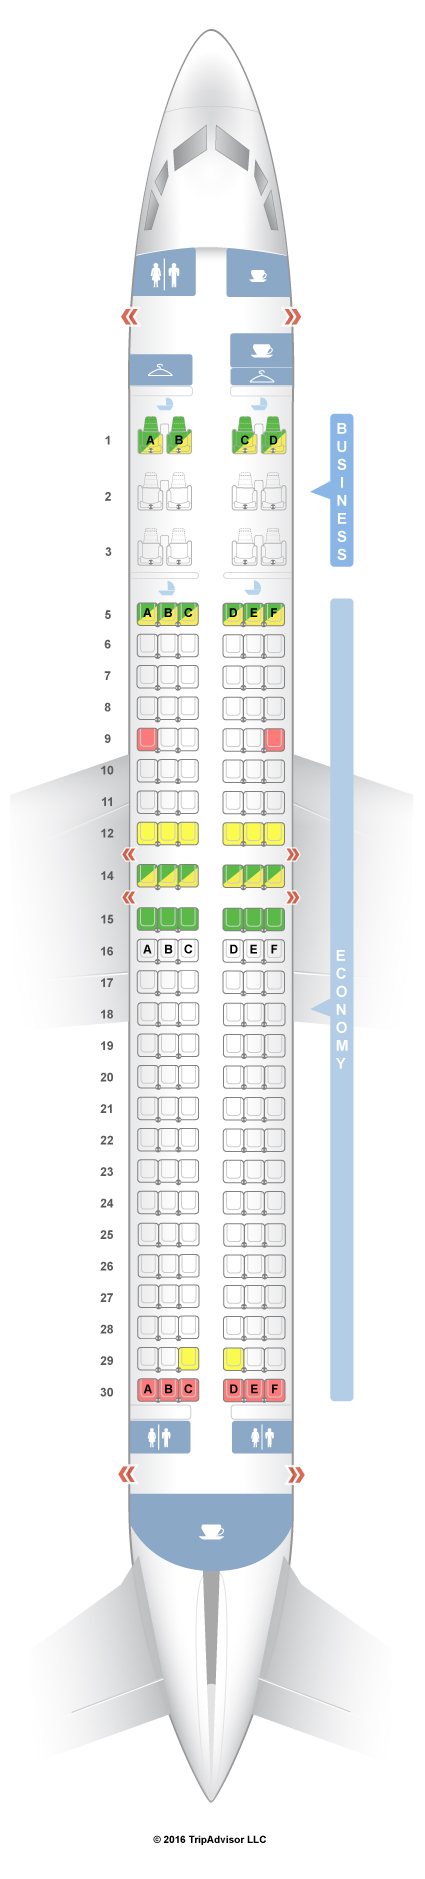 737-800 Seat Map SeatGuru Seat Map Silkair Boeing 737 800 (738) 737-800 Seat Map